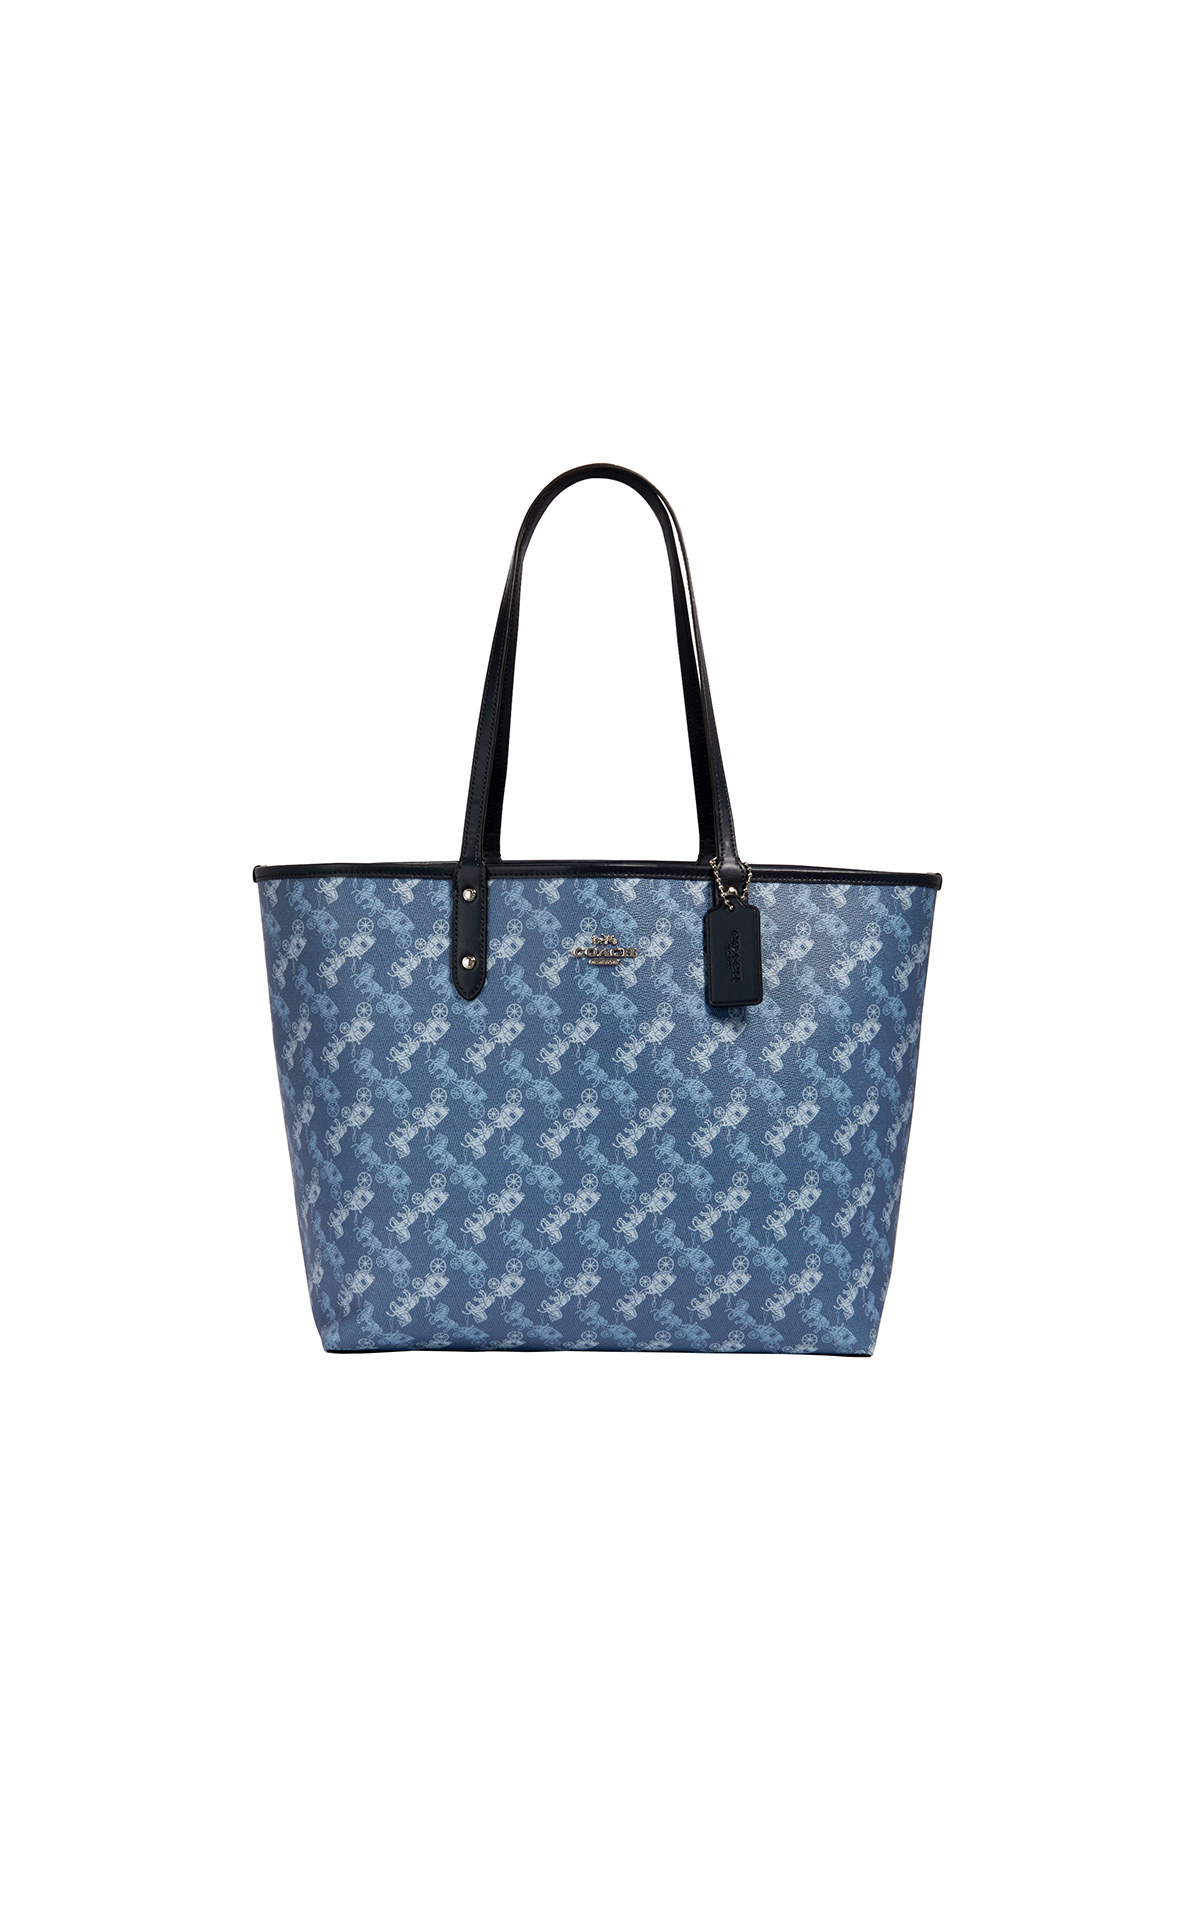 Coach Horse & Carriage print city tote in indigo pale blue multi at The Bicester Village Shopping Collection